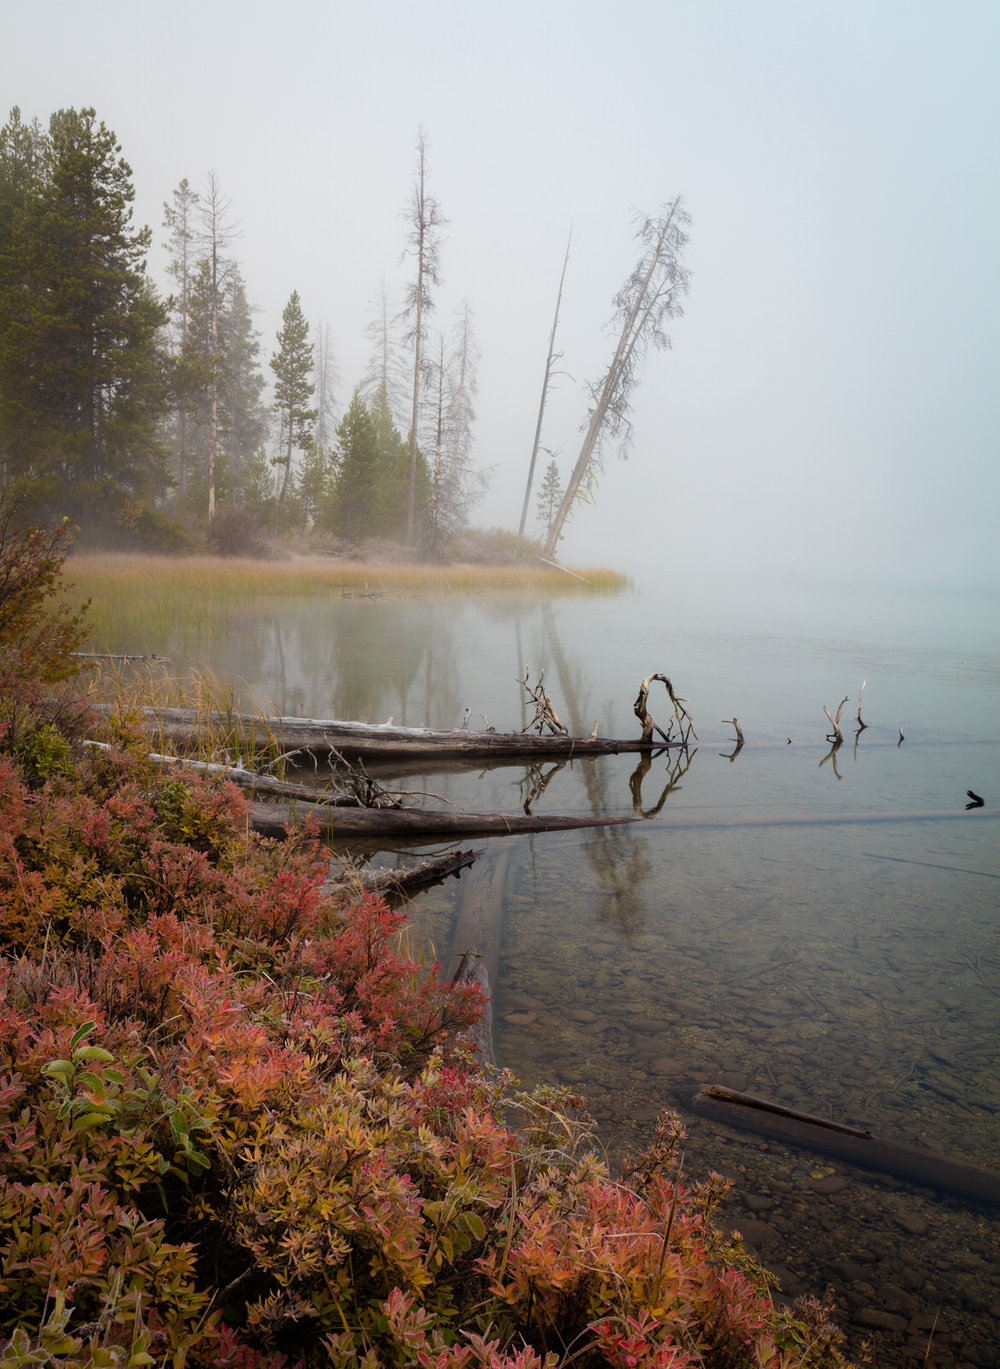 Fog and fall foliage at Little Redfish Lake near Stanley, Idaho